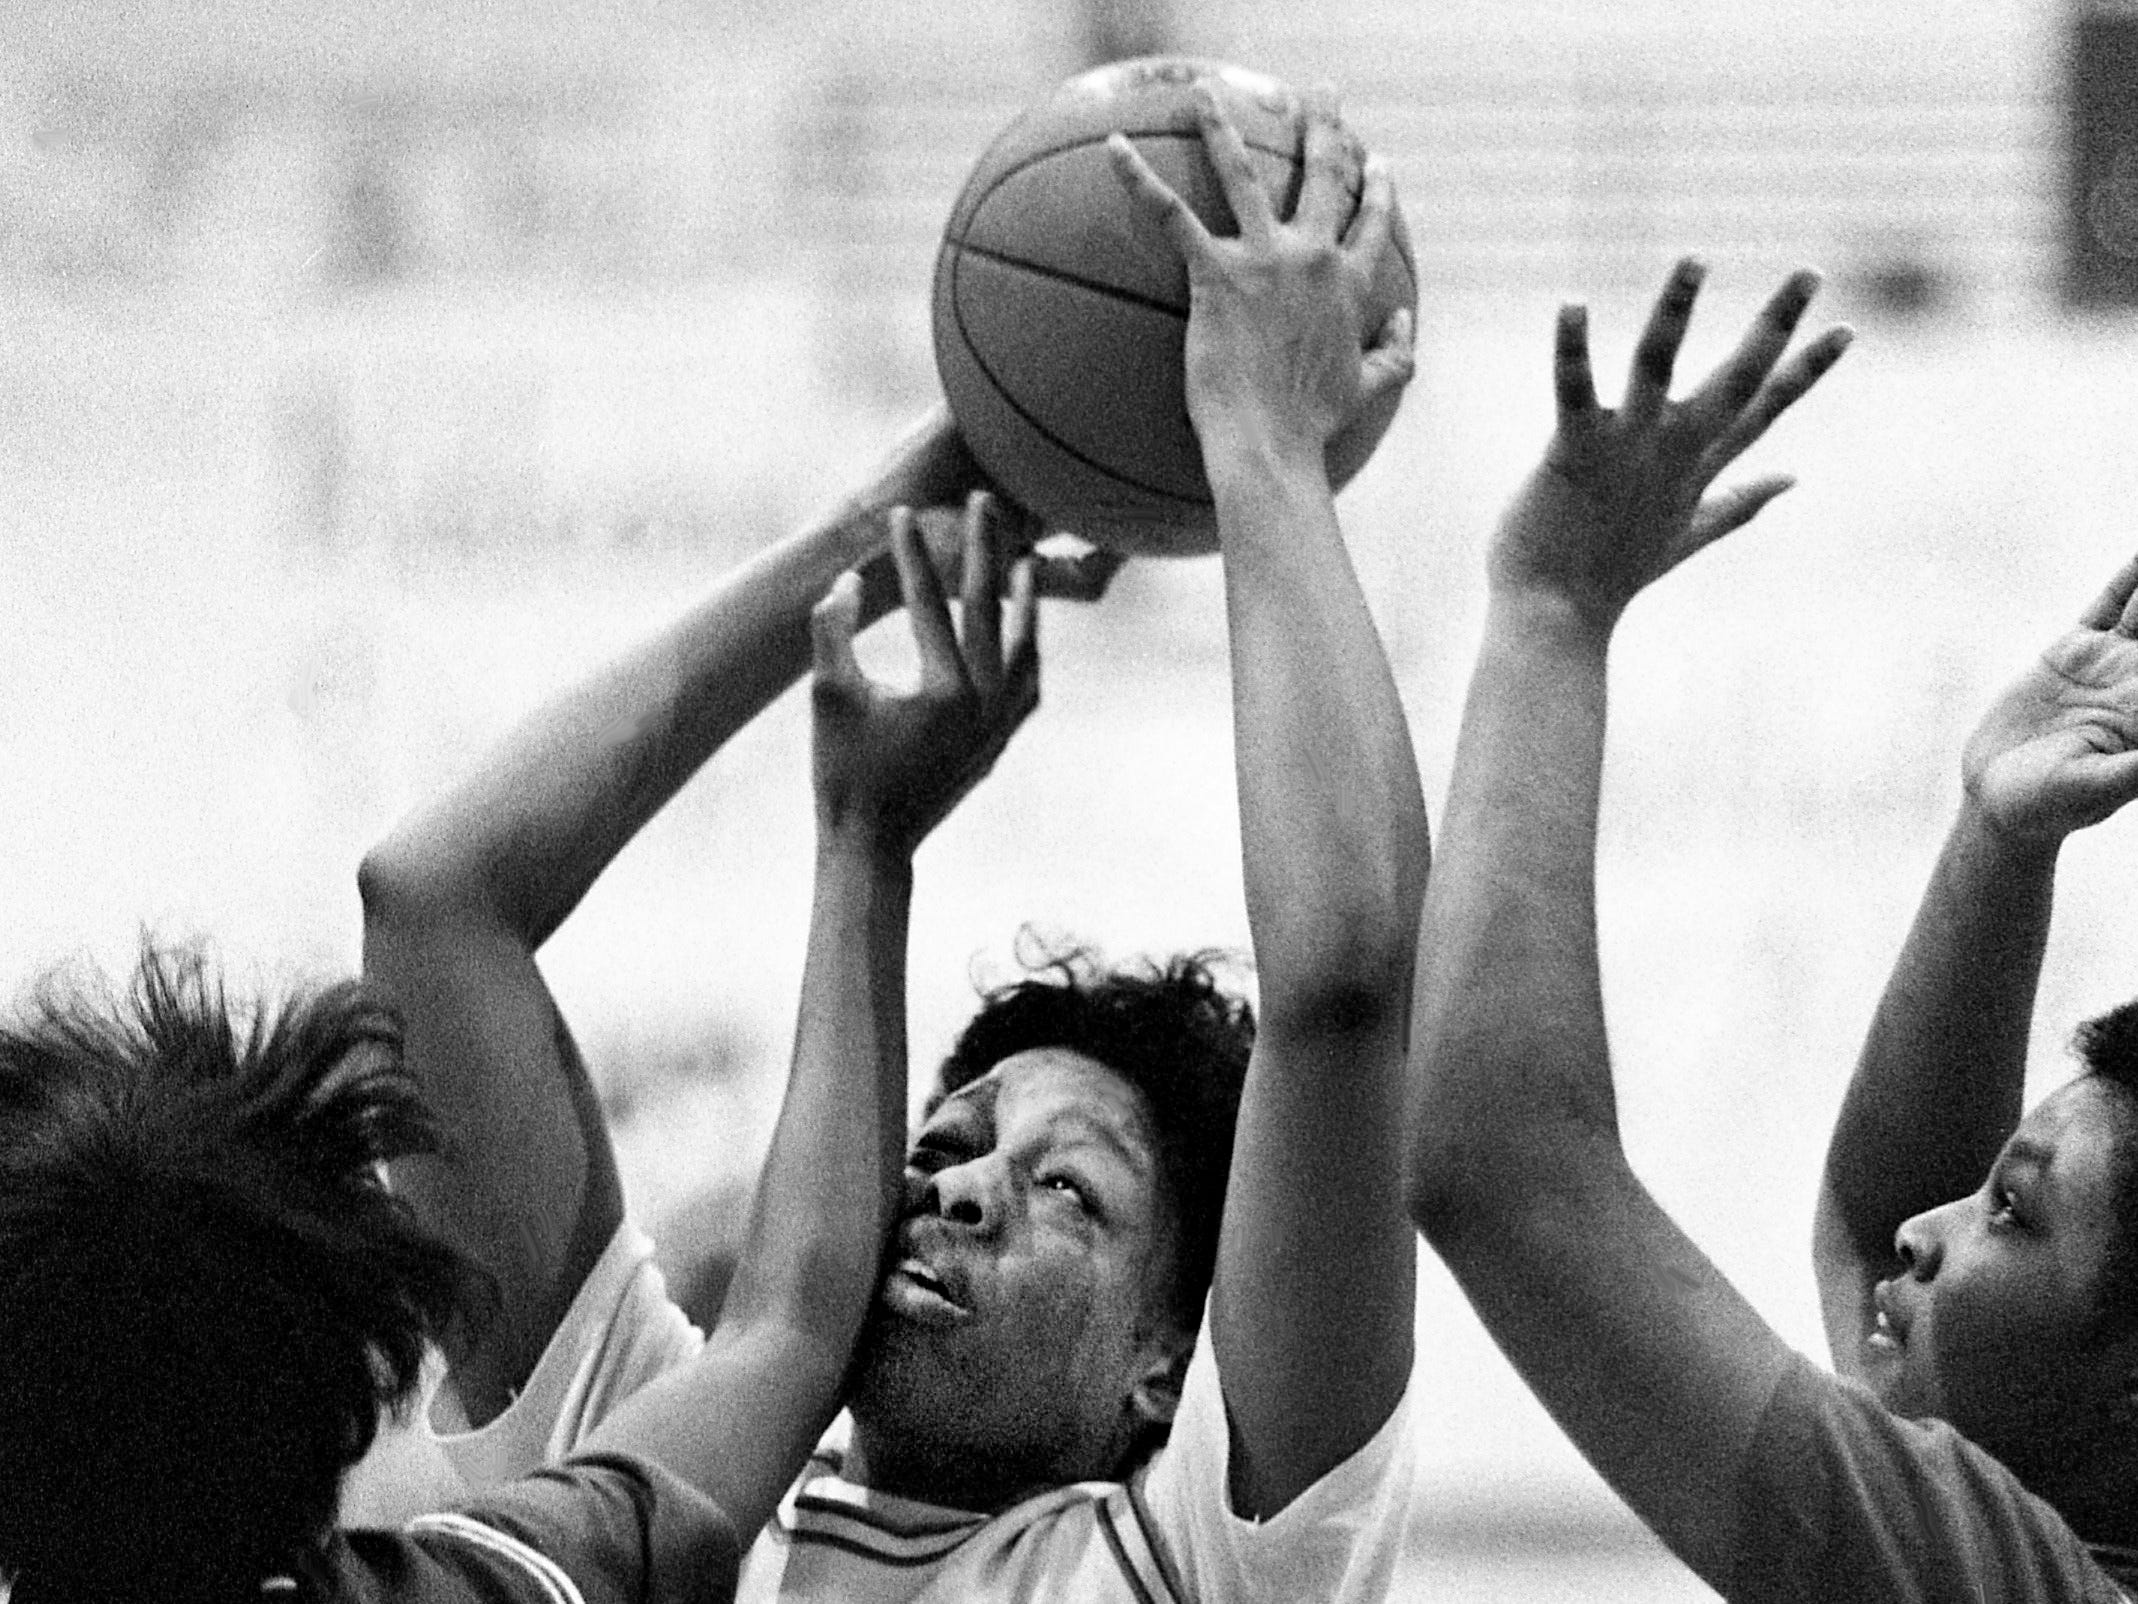 Glencliff High's Tiffany Wilson (41) squeezes between McGavock High teammates Tasha Frierson (40) and Pam Moreland en route to a 66-34 win for the District 12-AAA title at Hunters Lane High School on Feb. 24, 1989.